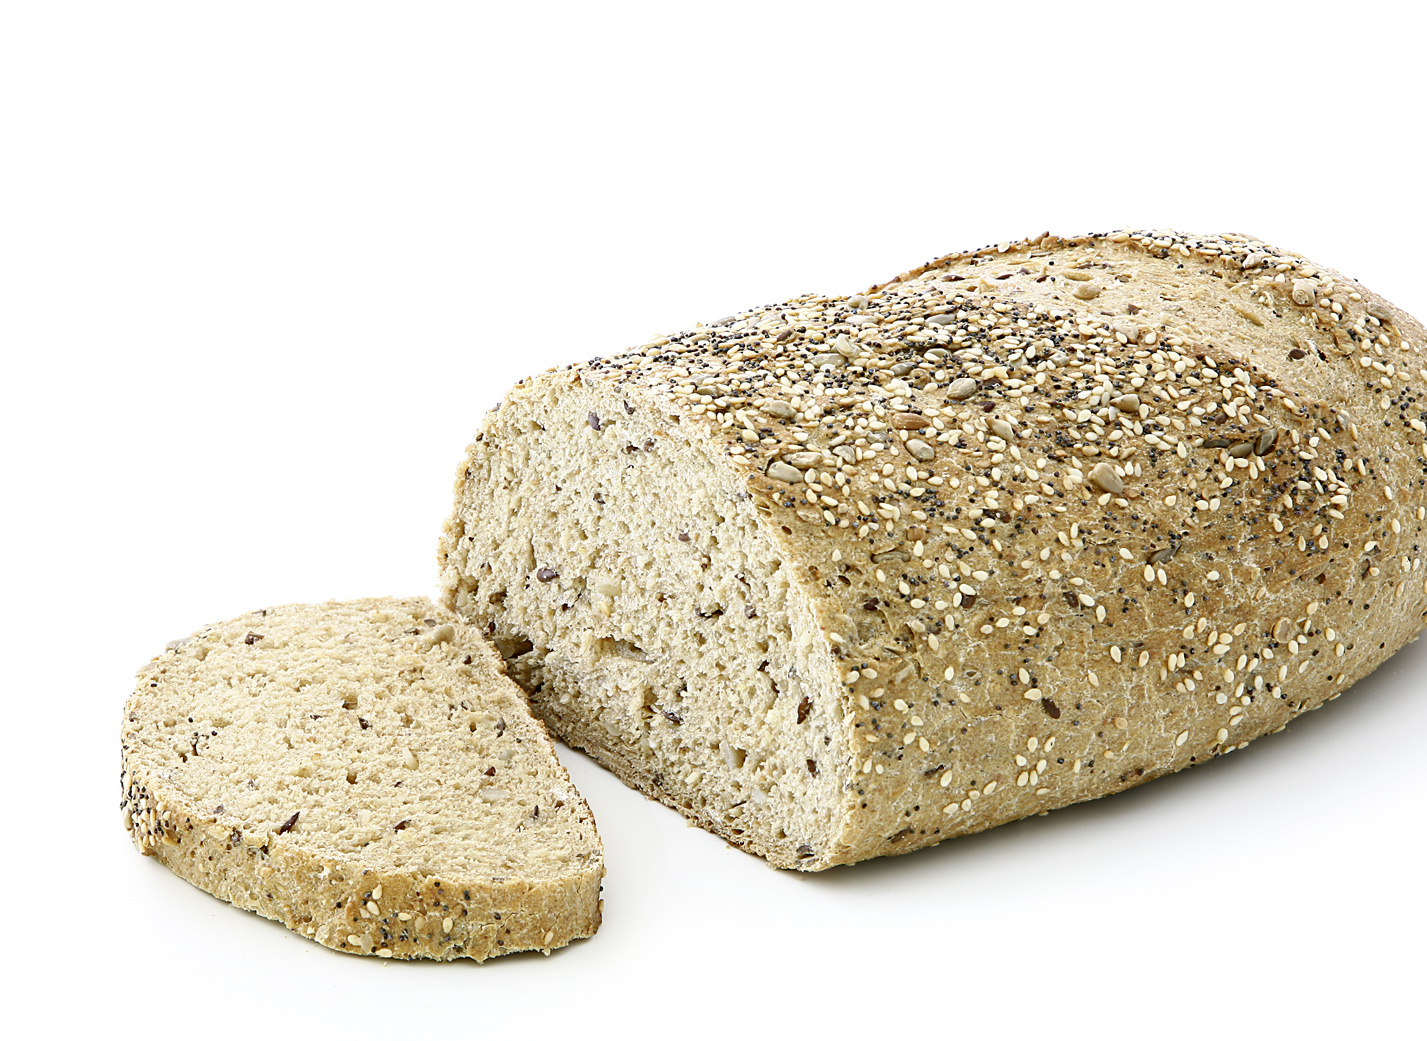 Champions Bread - Oval, unmolded multigrain bread/ equally sprinkled with poppy seeds, sesame seeds, linseeds and sunflower seeds length: 27.5 cm